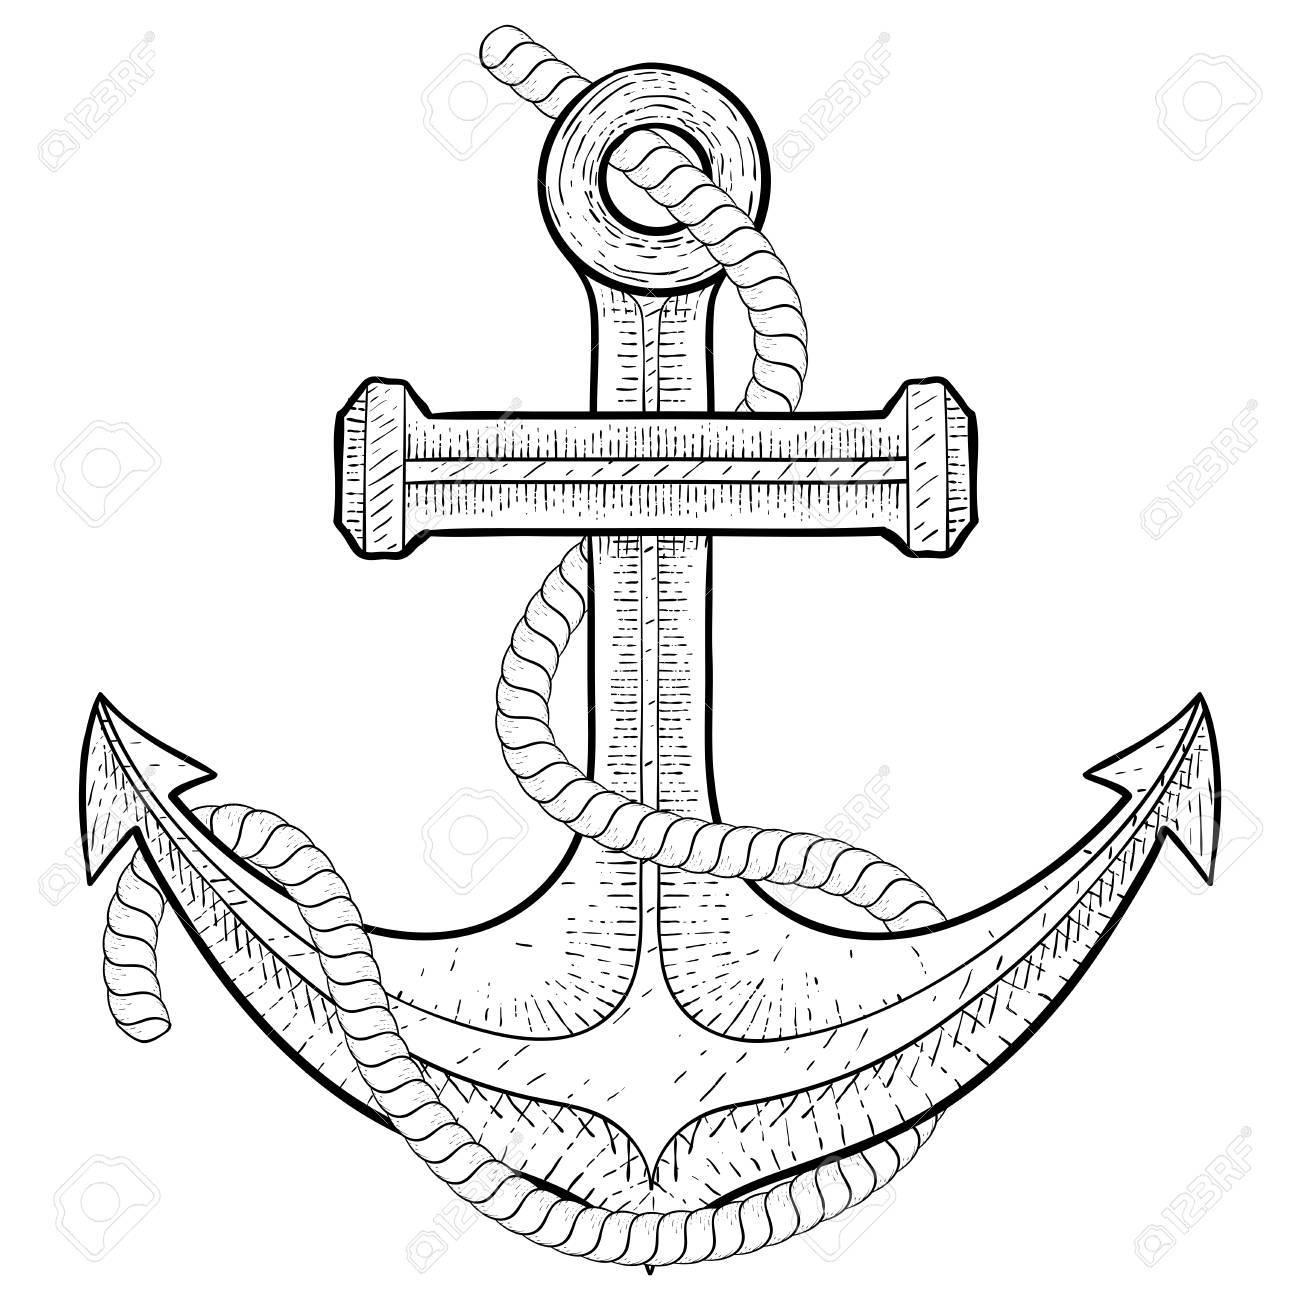 how to draw a anchor anchor tattoo drawing lesson step by step tattoos pop how anchor to a draw